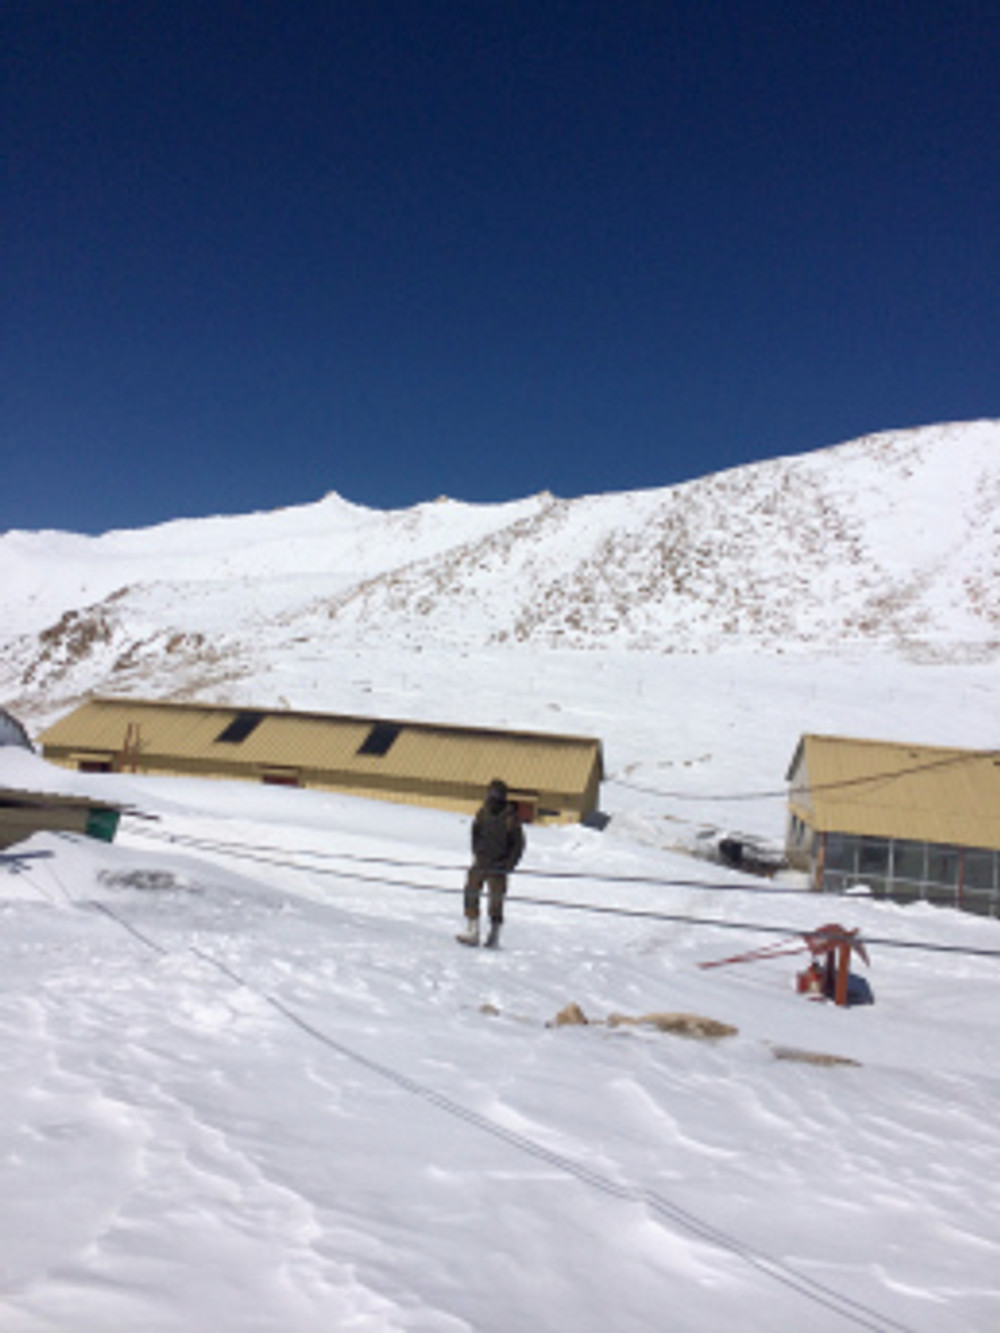 Even the army camps were sunk deep in snow at Khardungla